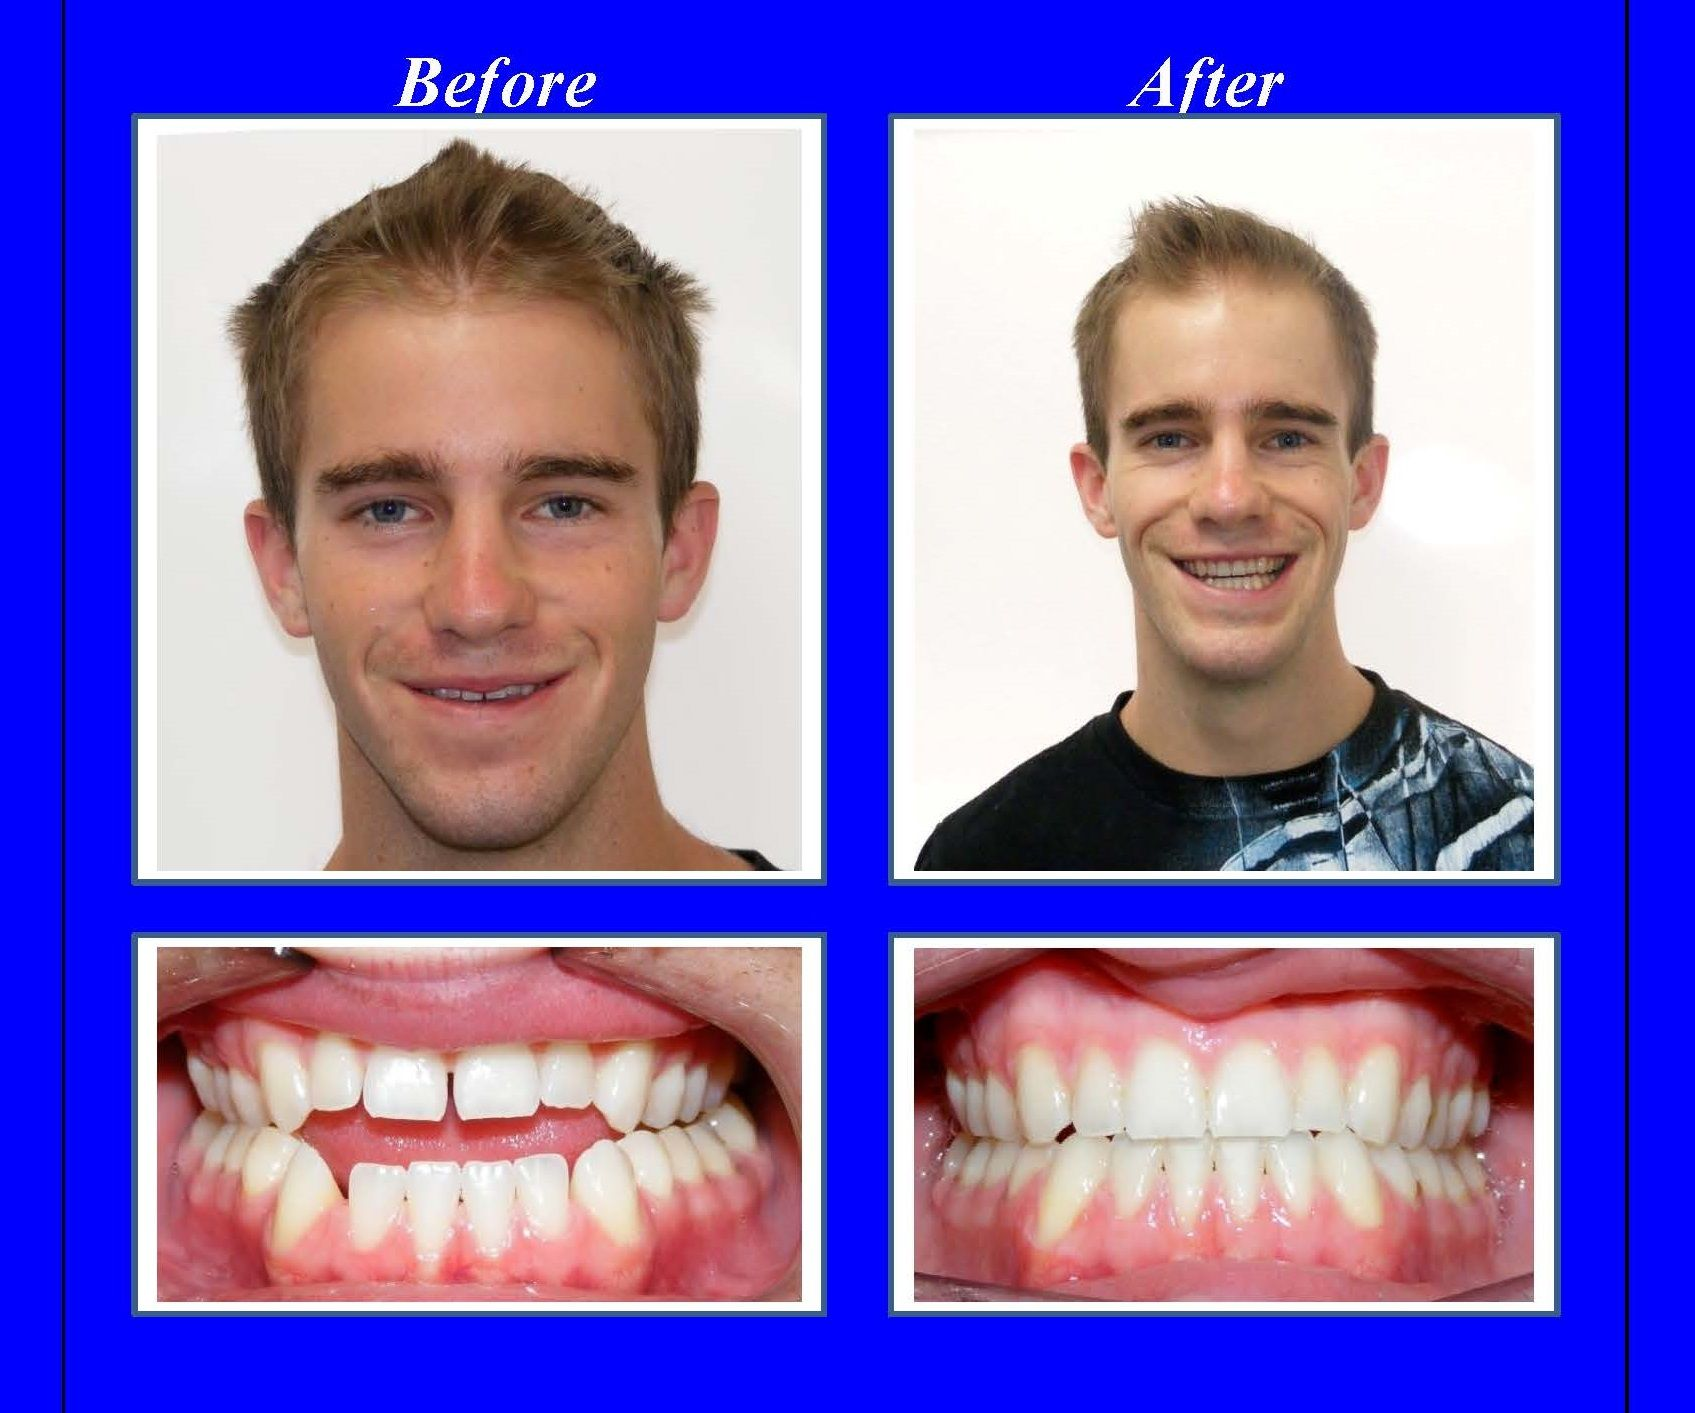 Notice how this young man's front teeth don't come